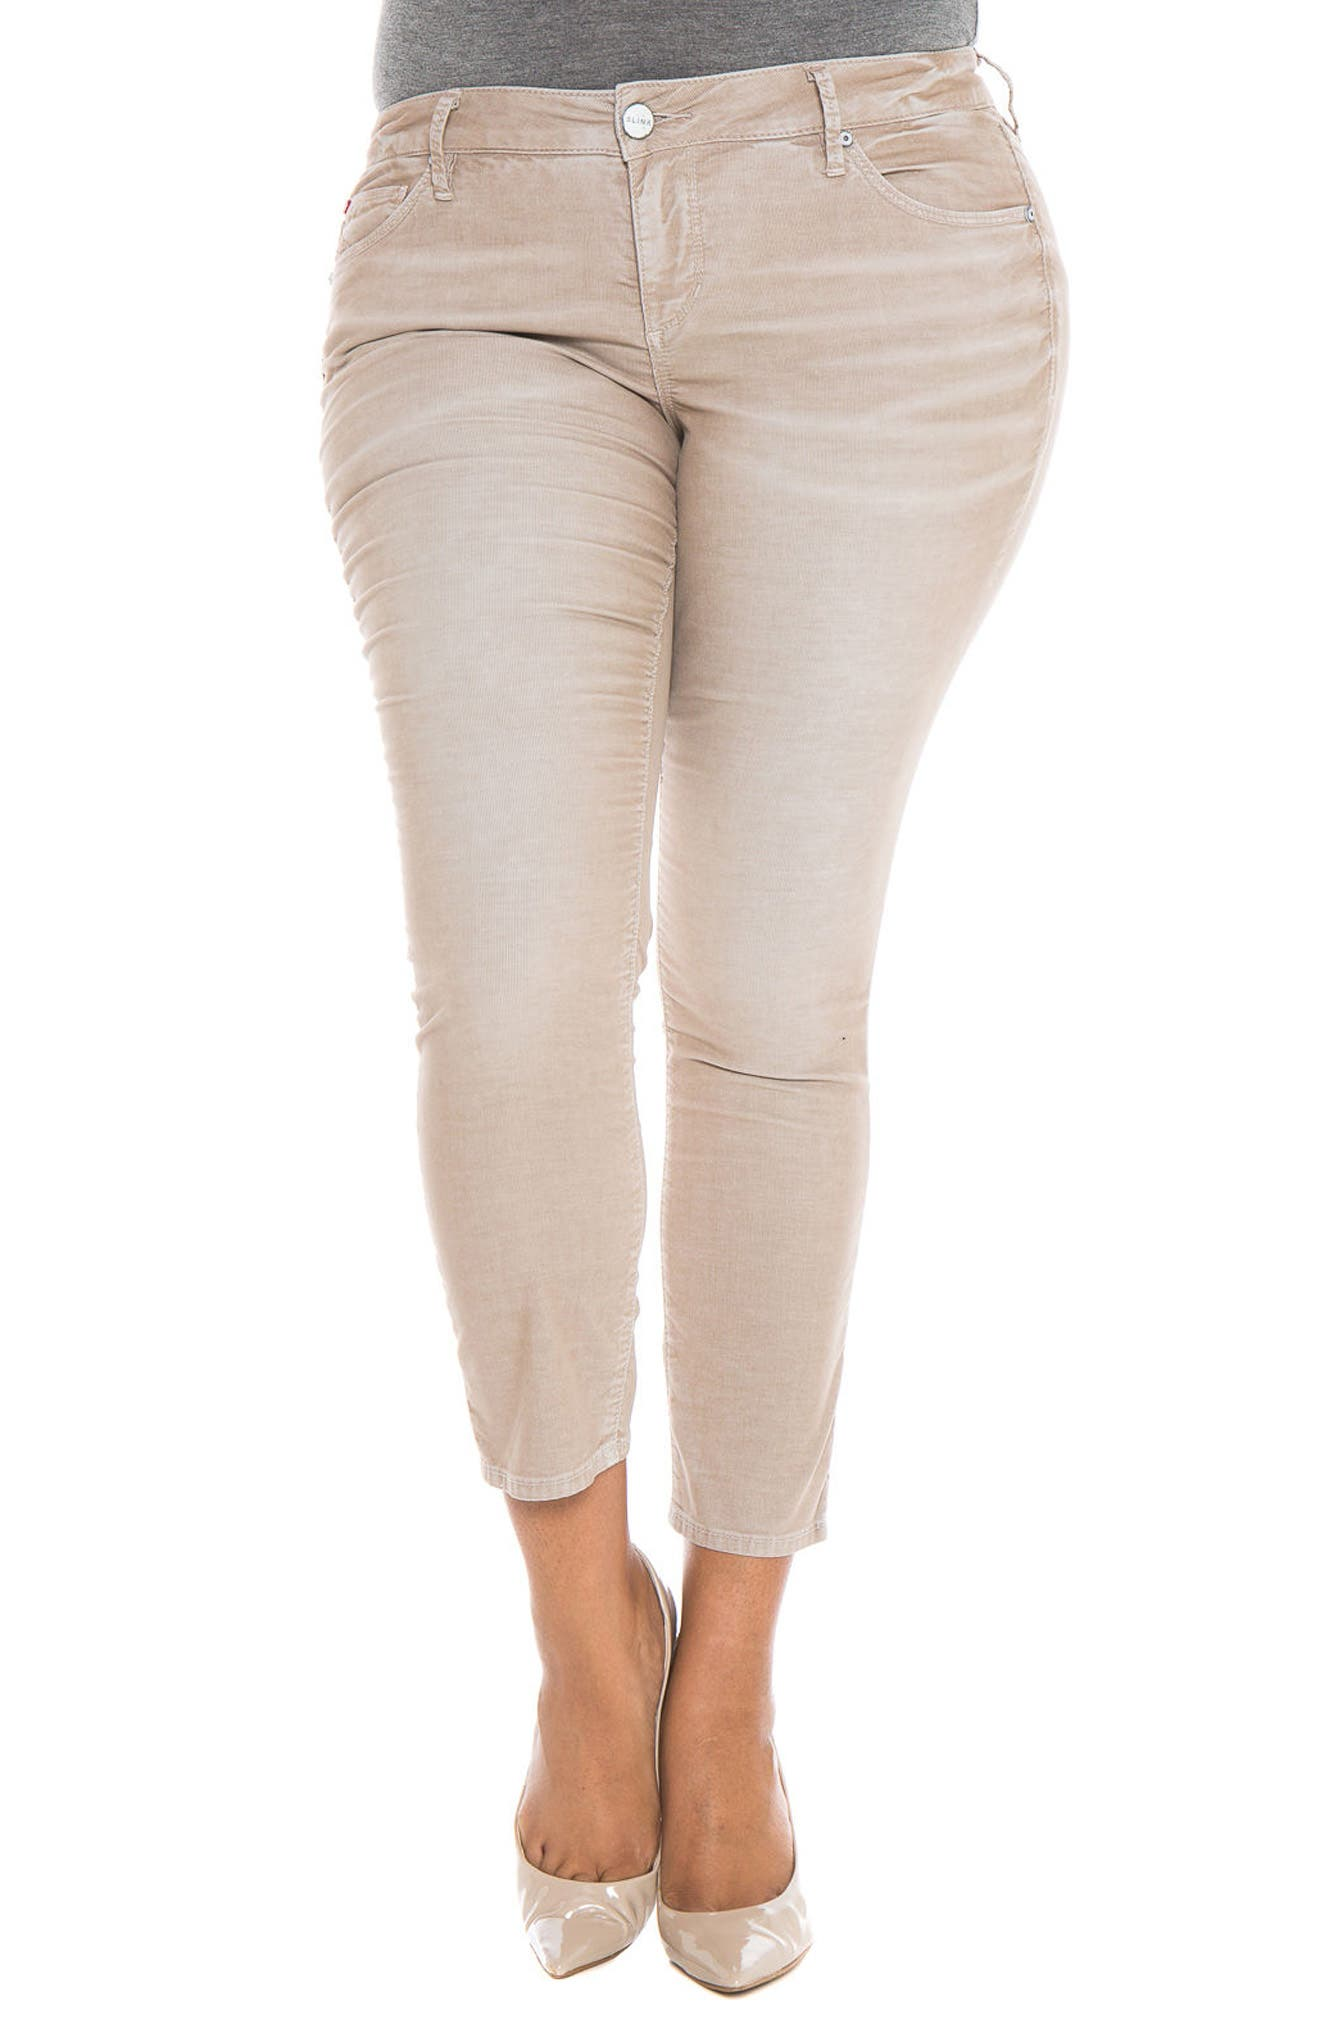 Main Image - SLINK Jeans Stretch Corduroy Cropped Skinny Pants (Plus Size)